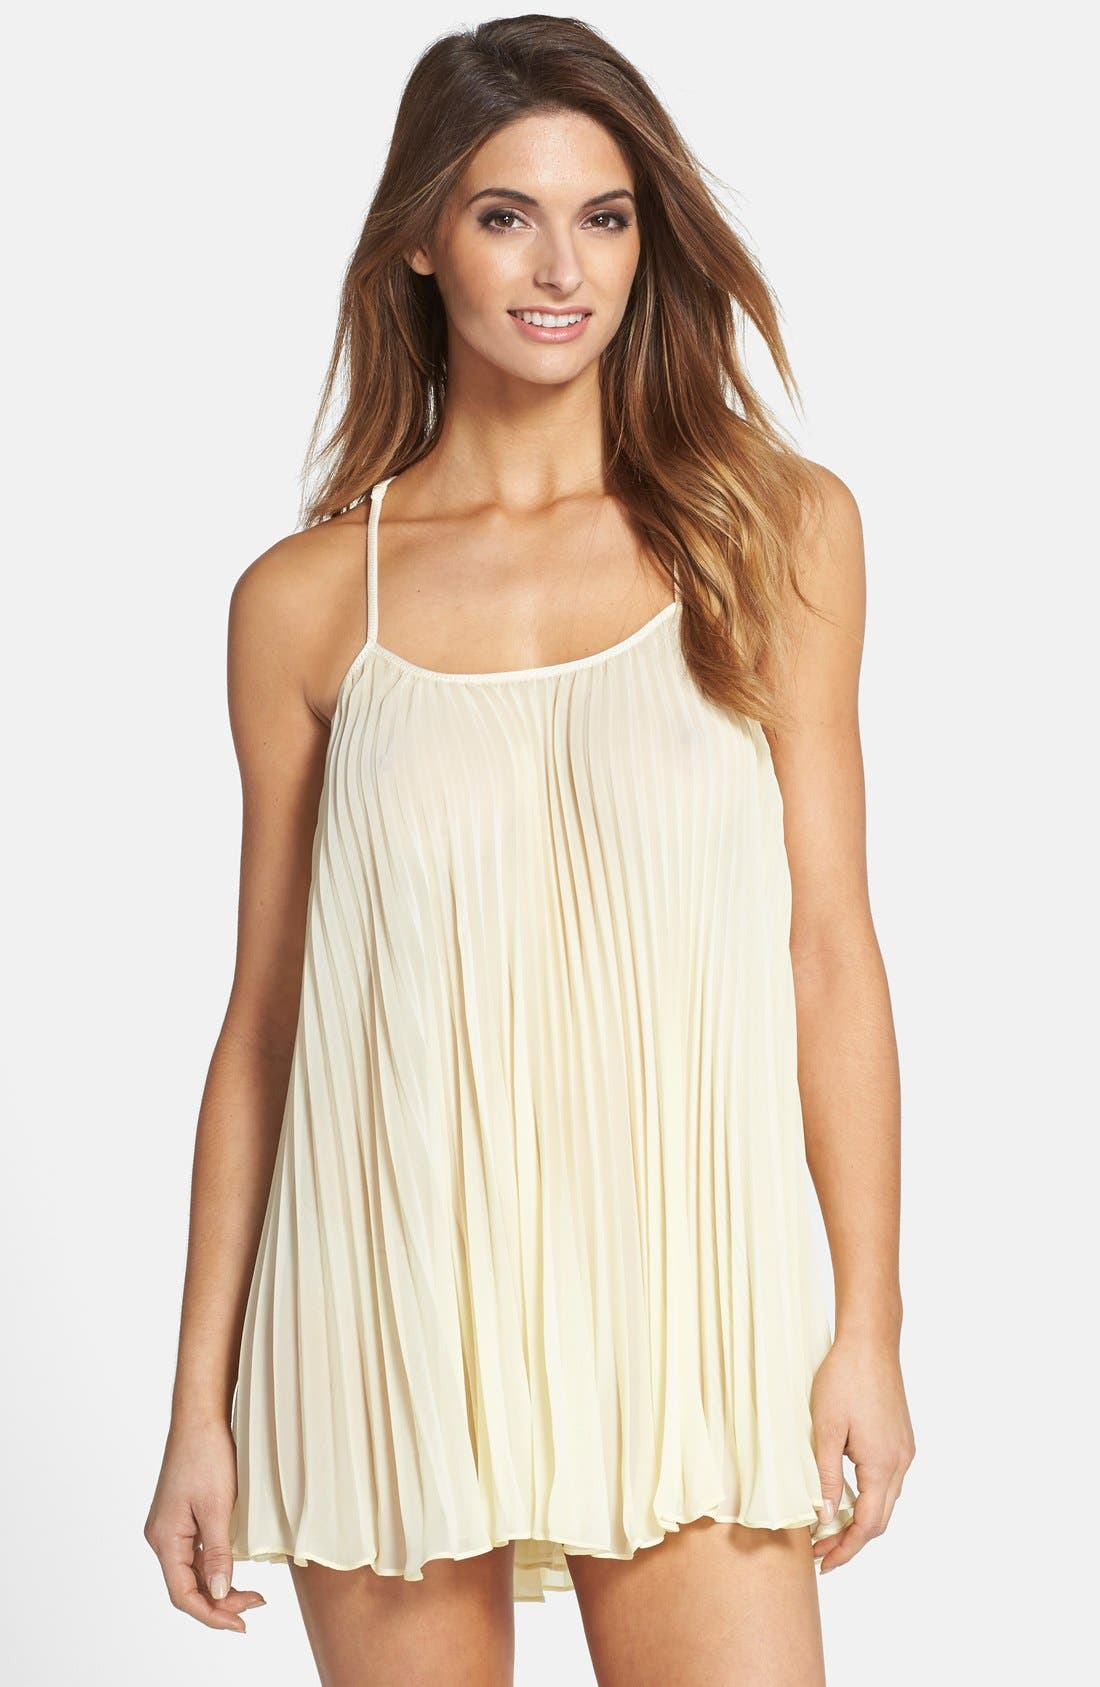 Alternate Image 1 Selected - In Bloom by Jonquil 'Sunburst' Pleated Chemise